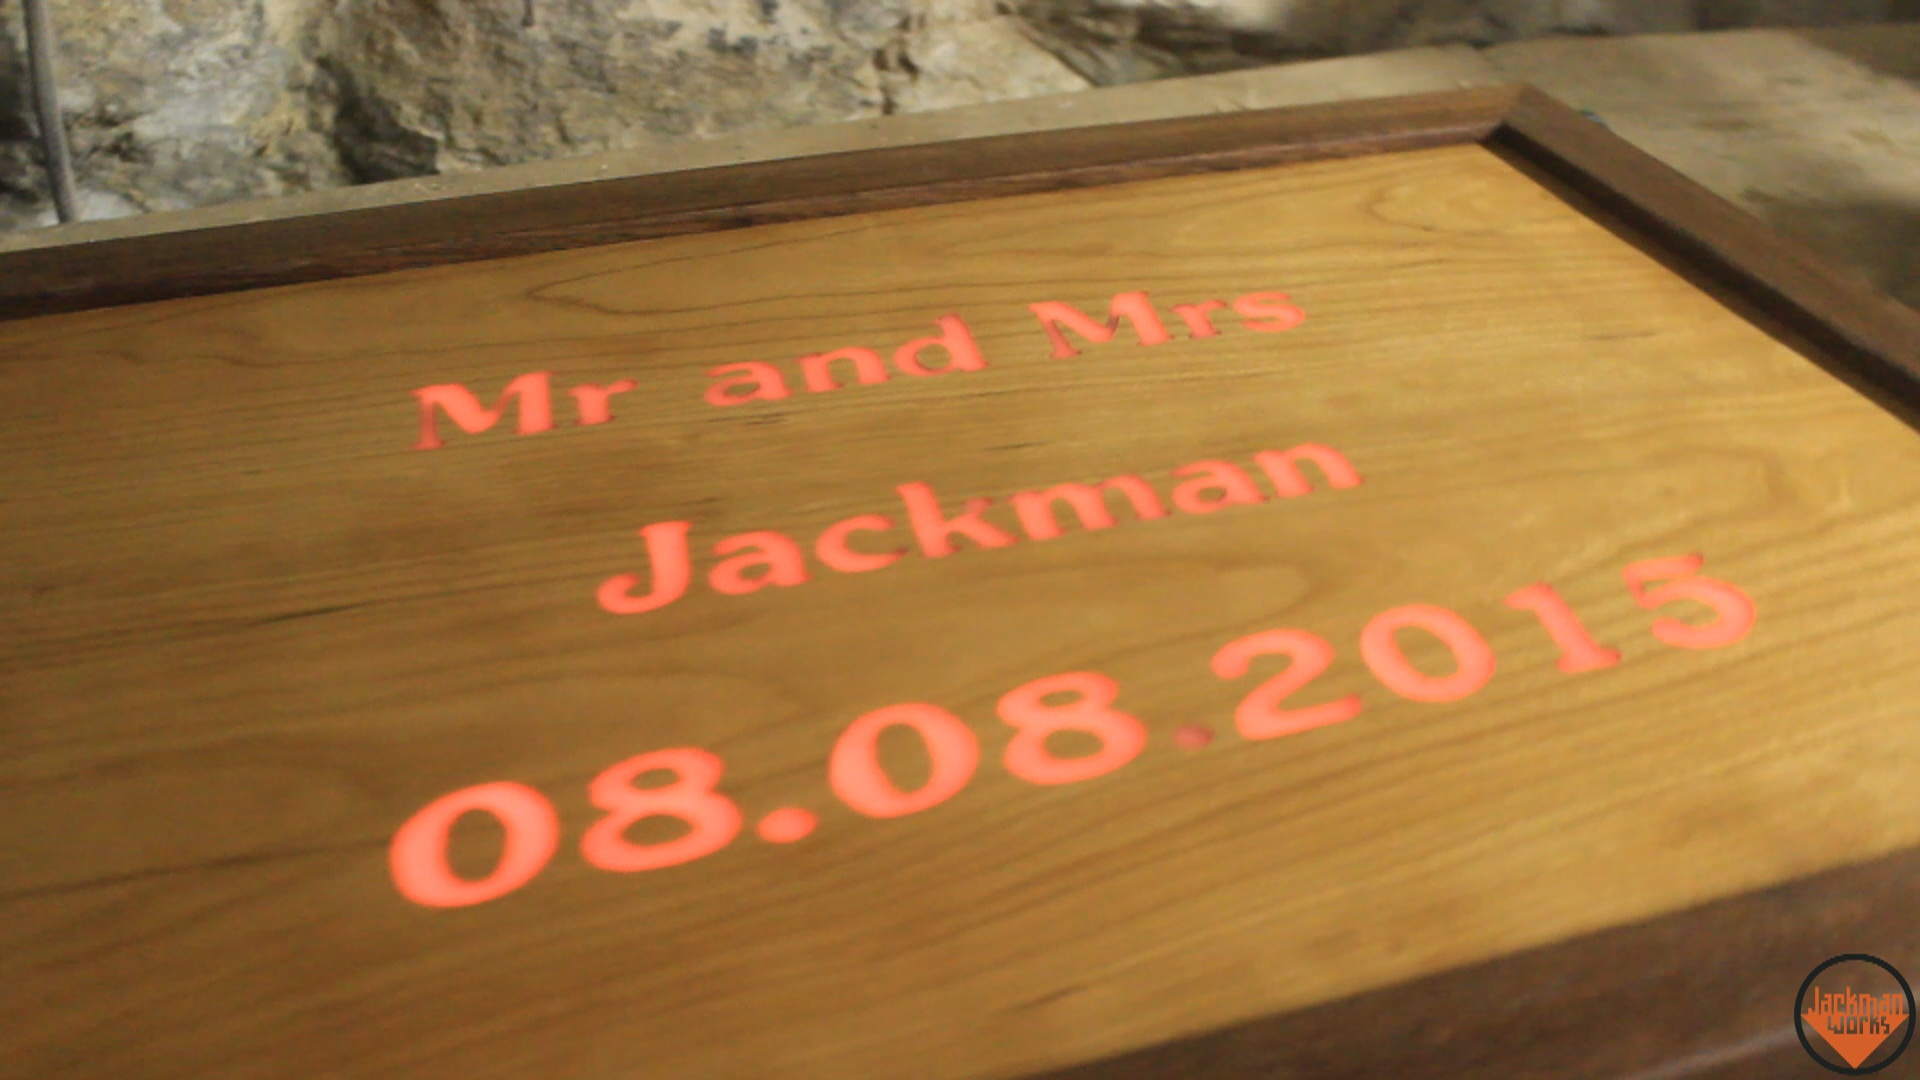 Led cherry wedding sign 28 jackman works jackmanjackman worksjackman carpentrycarpentrywoodworkingwooddiydo it yourselfbuildingmakingdesignupcycledrecycledreclaimedlighted signled solutioingenieria Image collections